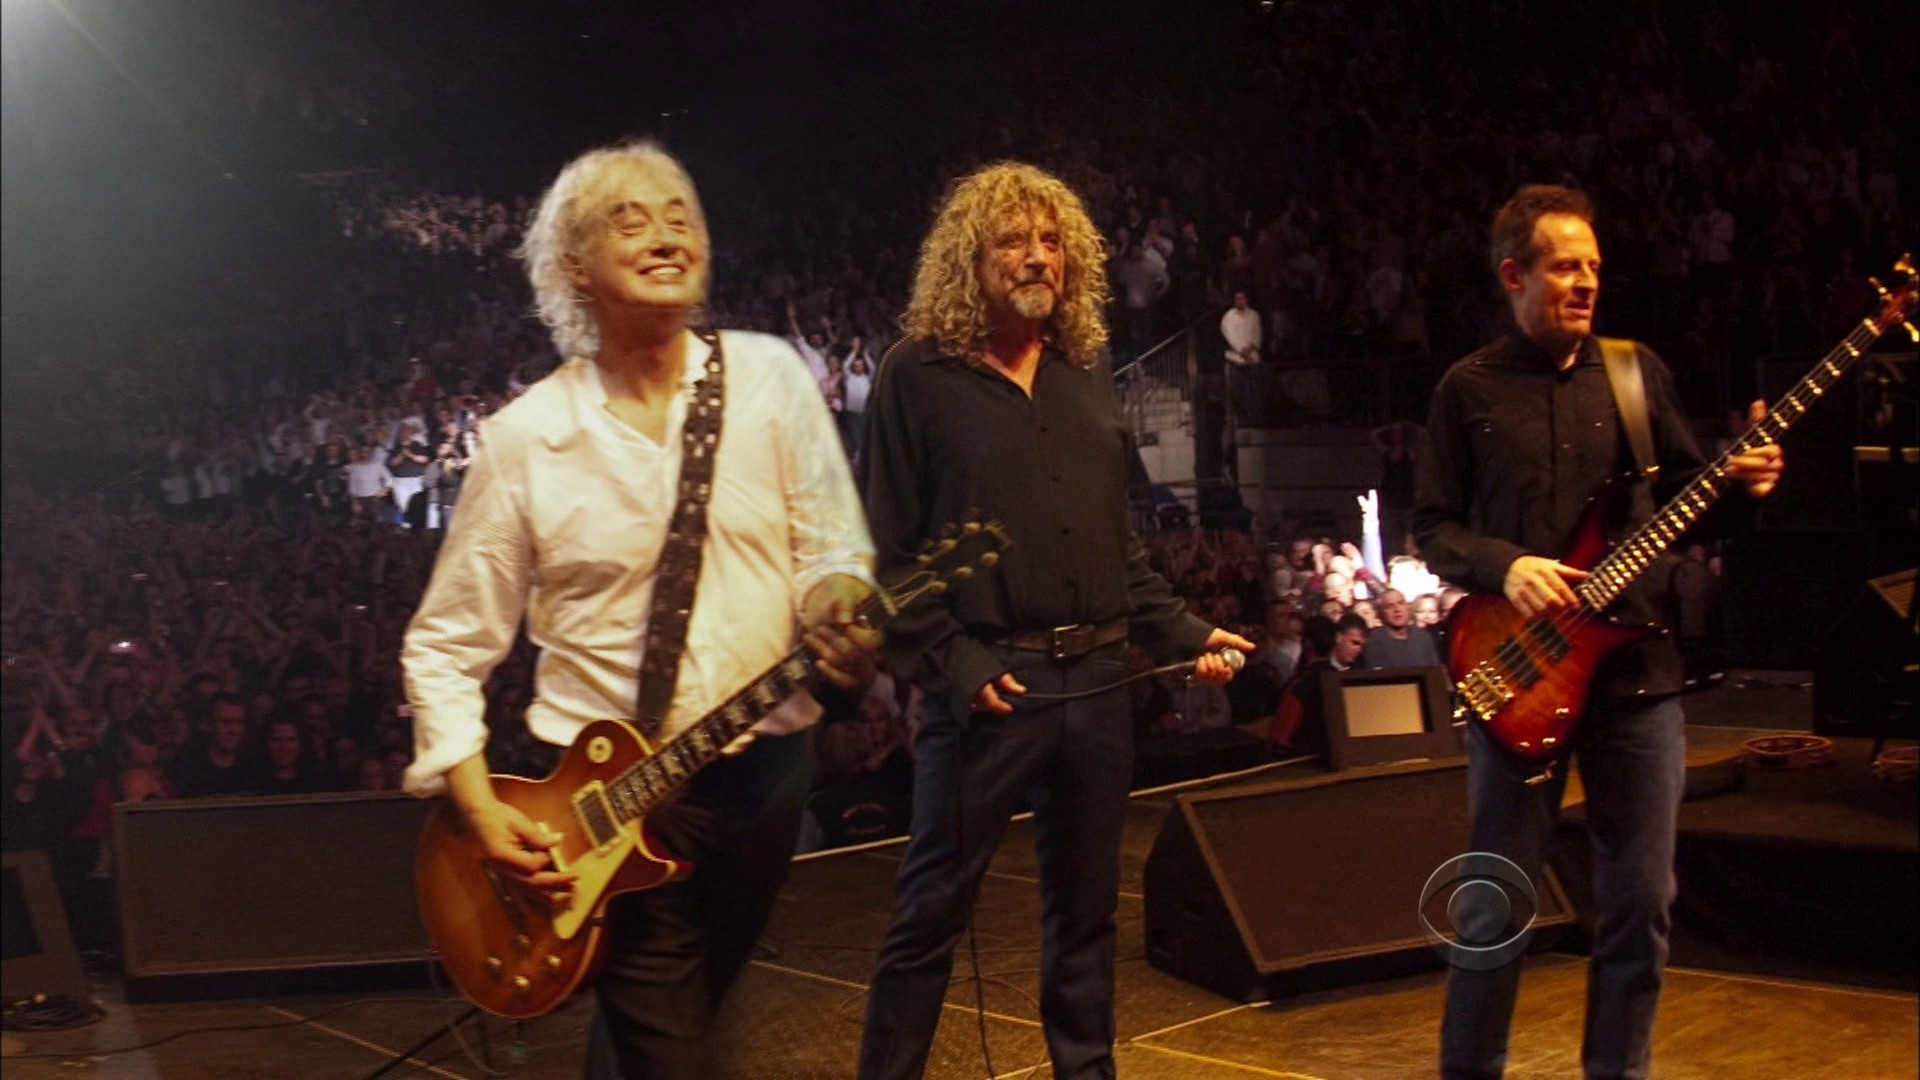 vlcsnap 00001 Kennedy Center Honors Led Zeppelin (2012) HDTV